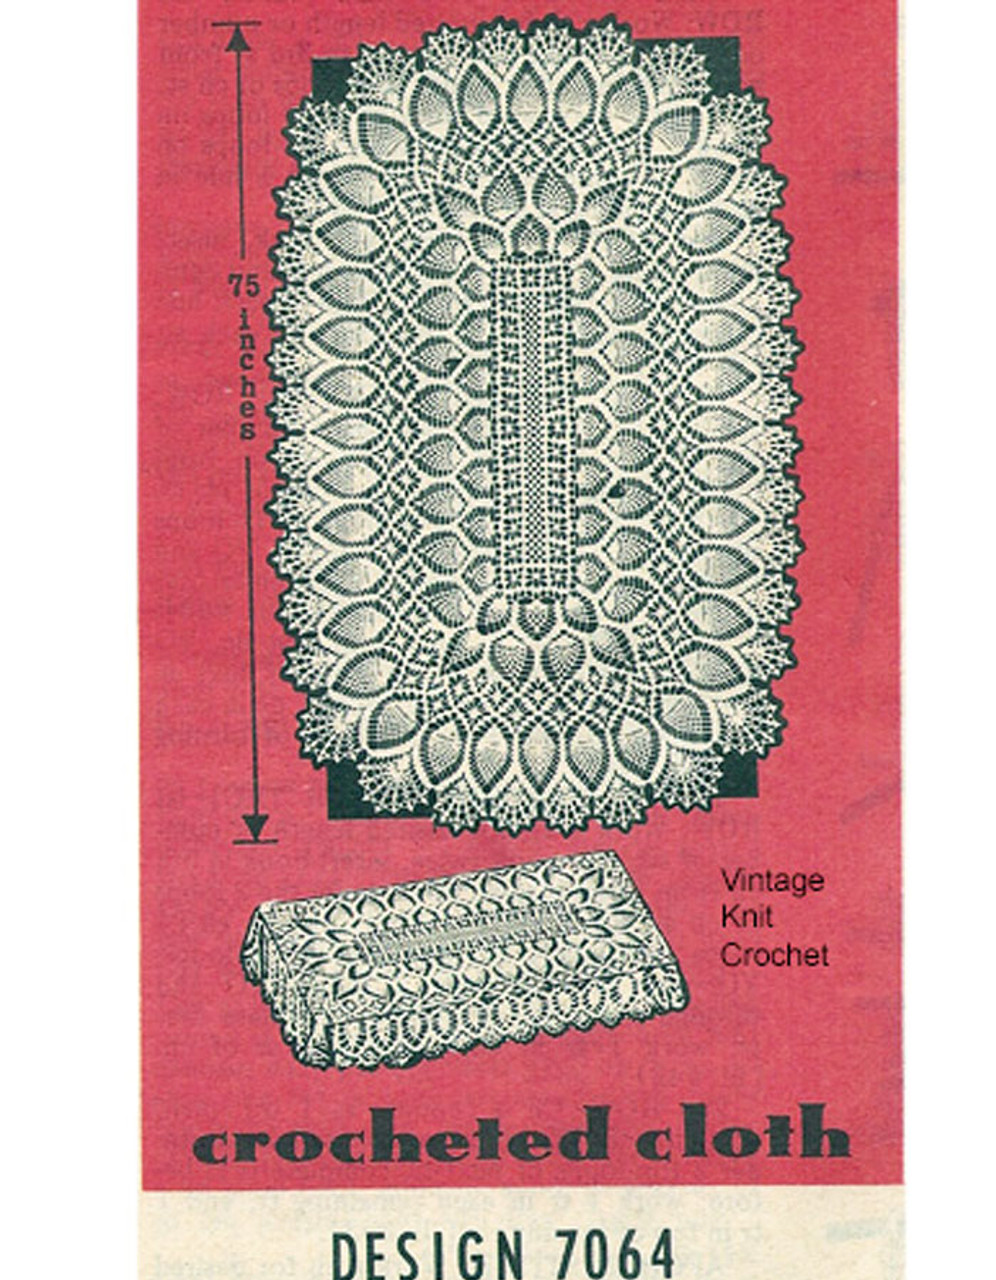 Crochet Pineapple Tablecloth Pattern Design 7064